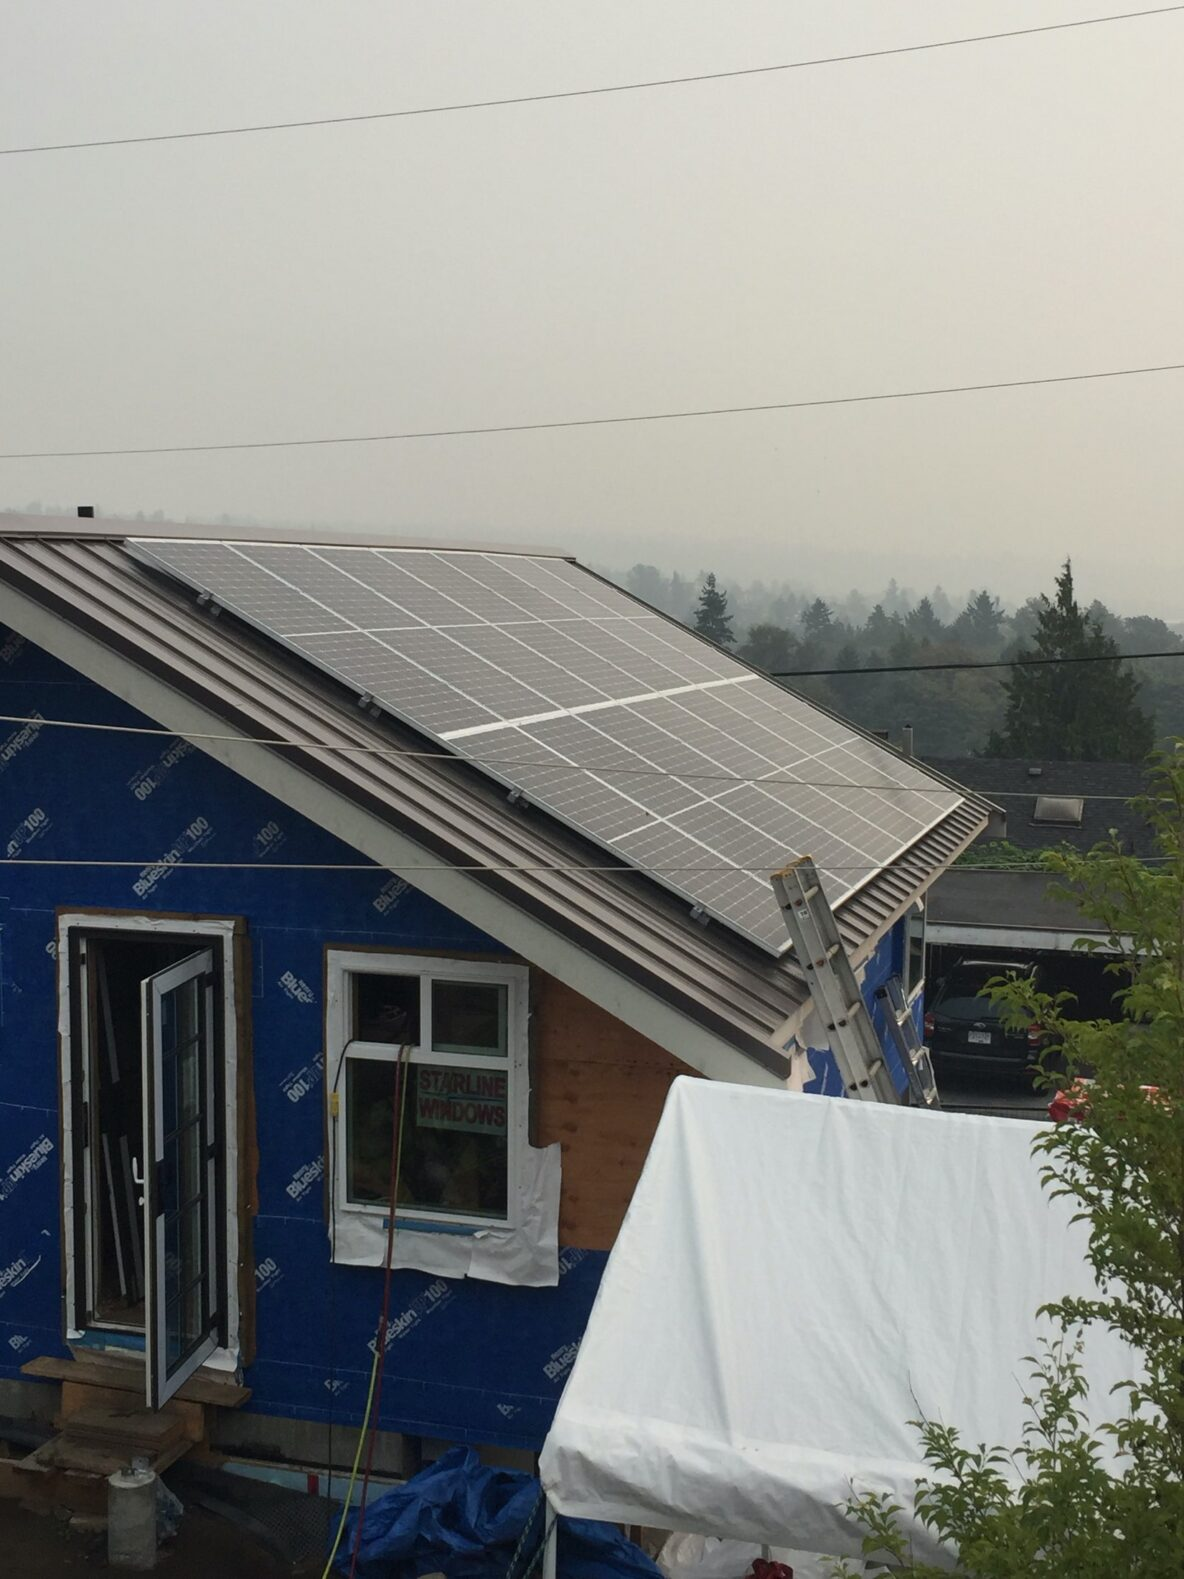 A close look at solar panels installed on a new house